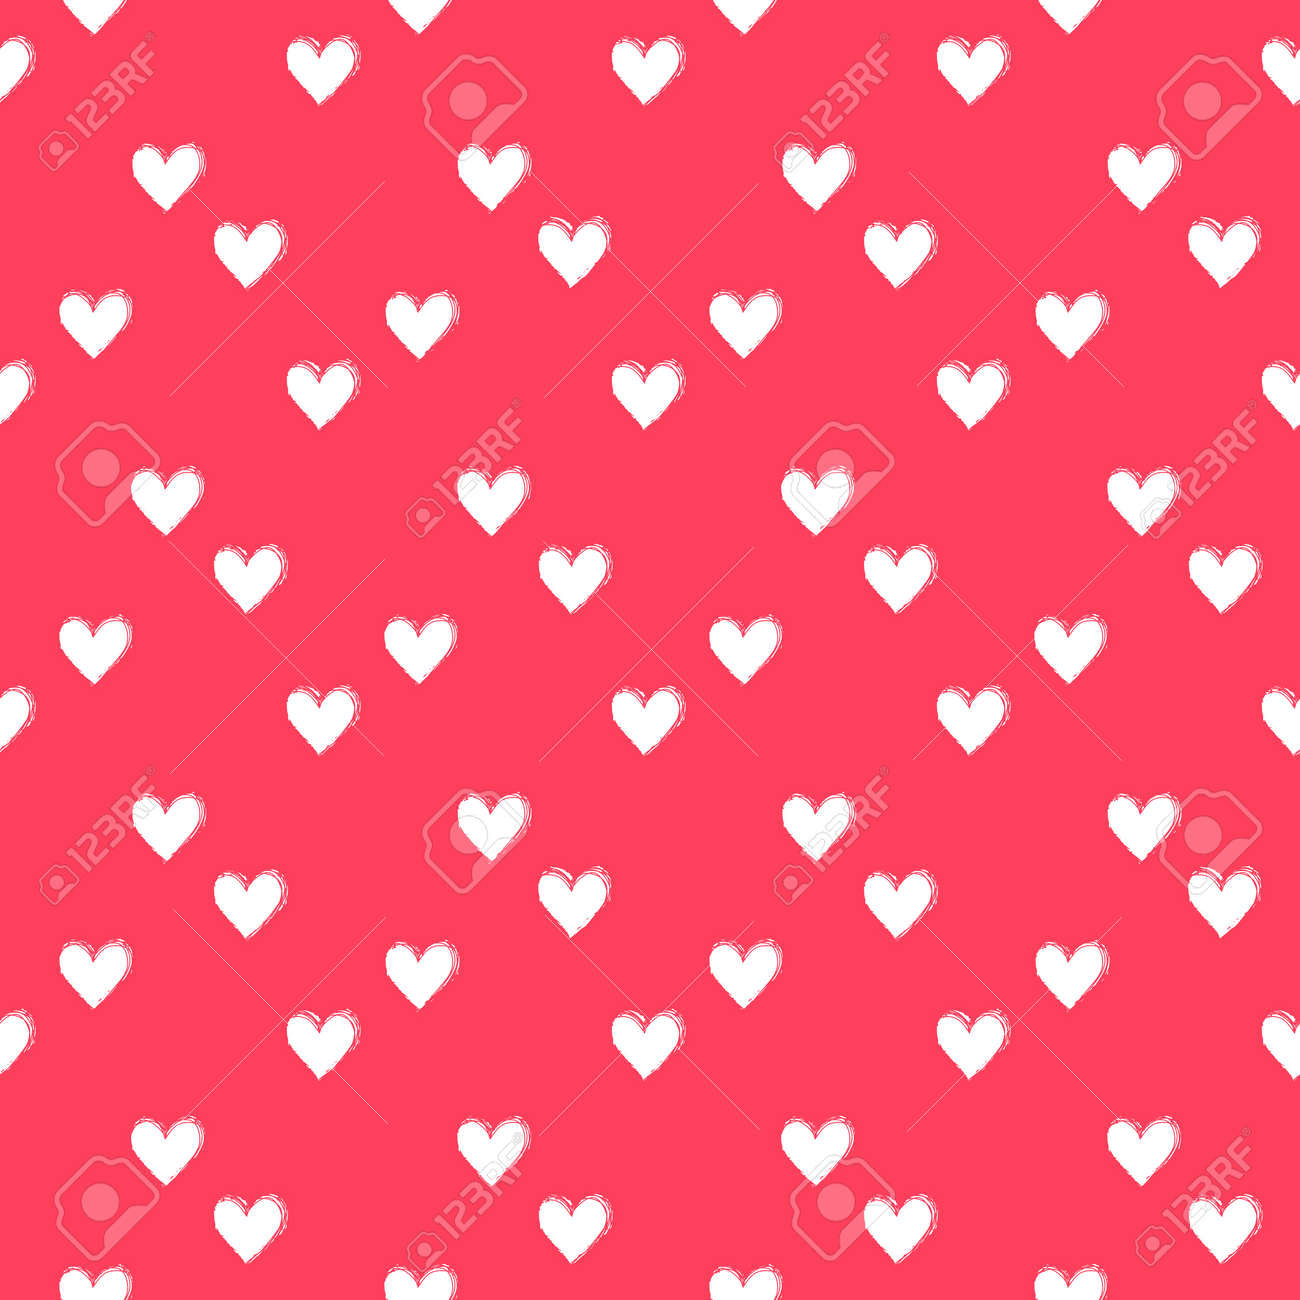 Seamless heart pattern hand painted with ink brush - 169056848